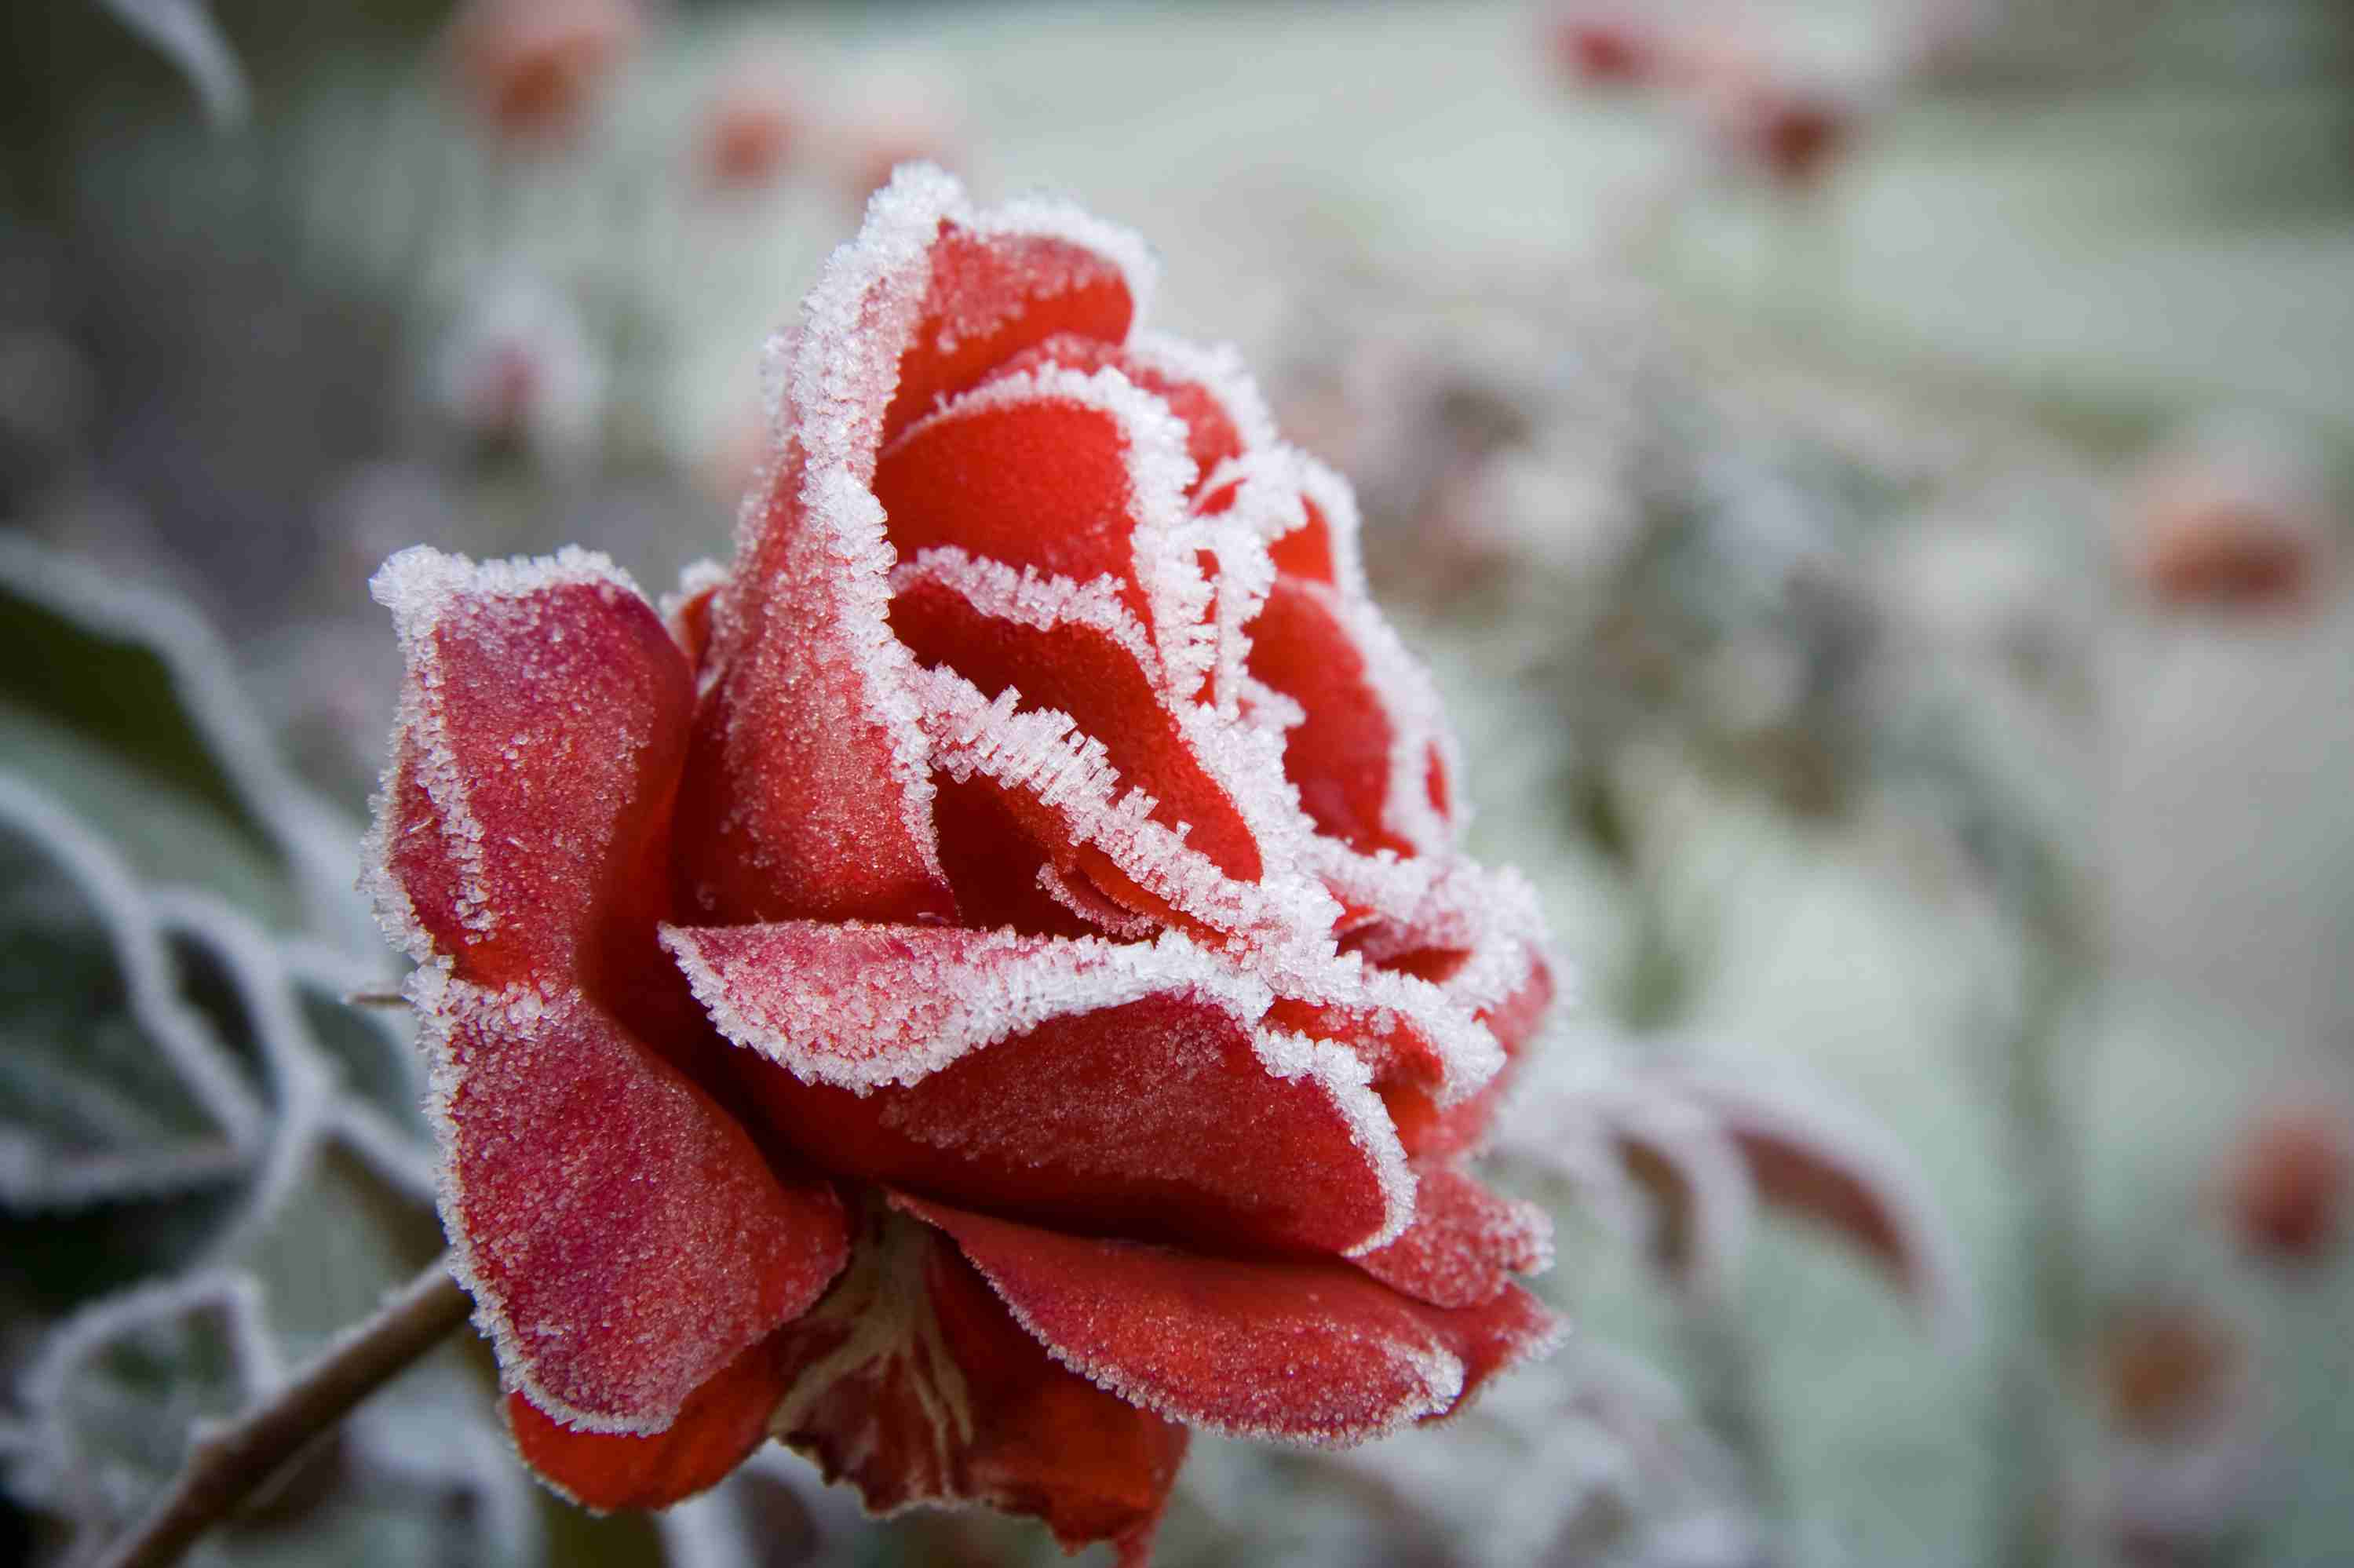 A frosted red rose